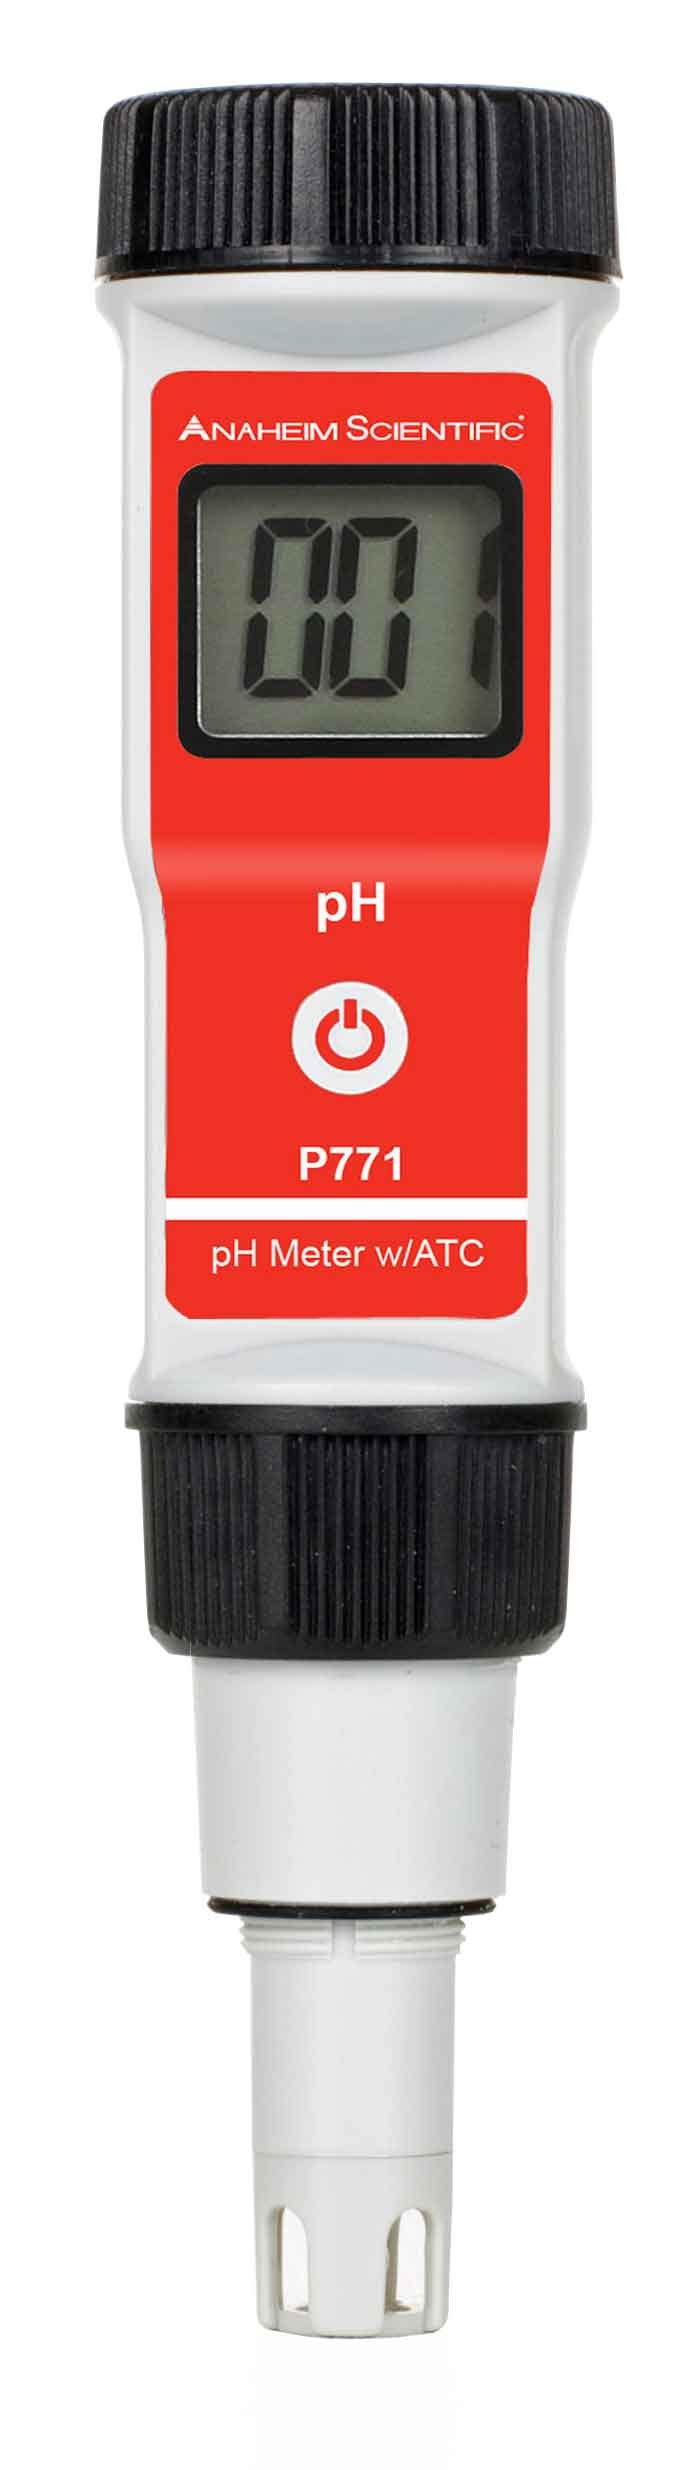 Anaheim Scientific P771 High Accuracy Pocket Sized pH Meter with ATC, Measures 0.00-14.00 pH, 0.01 pH Resolution